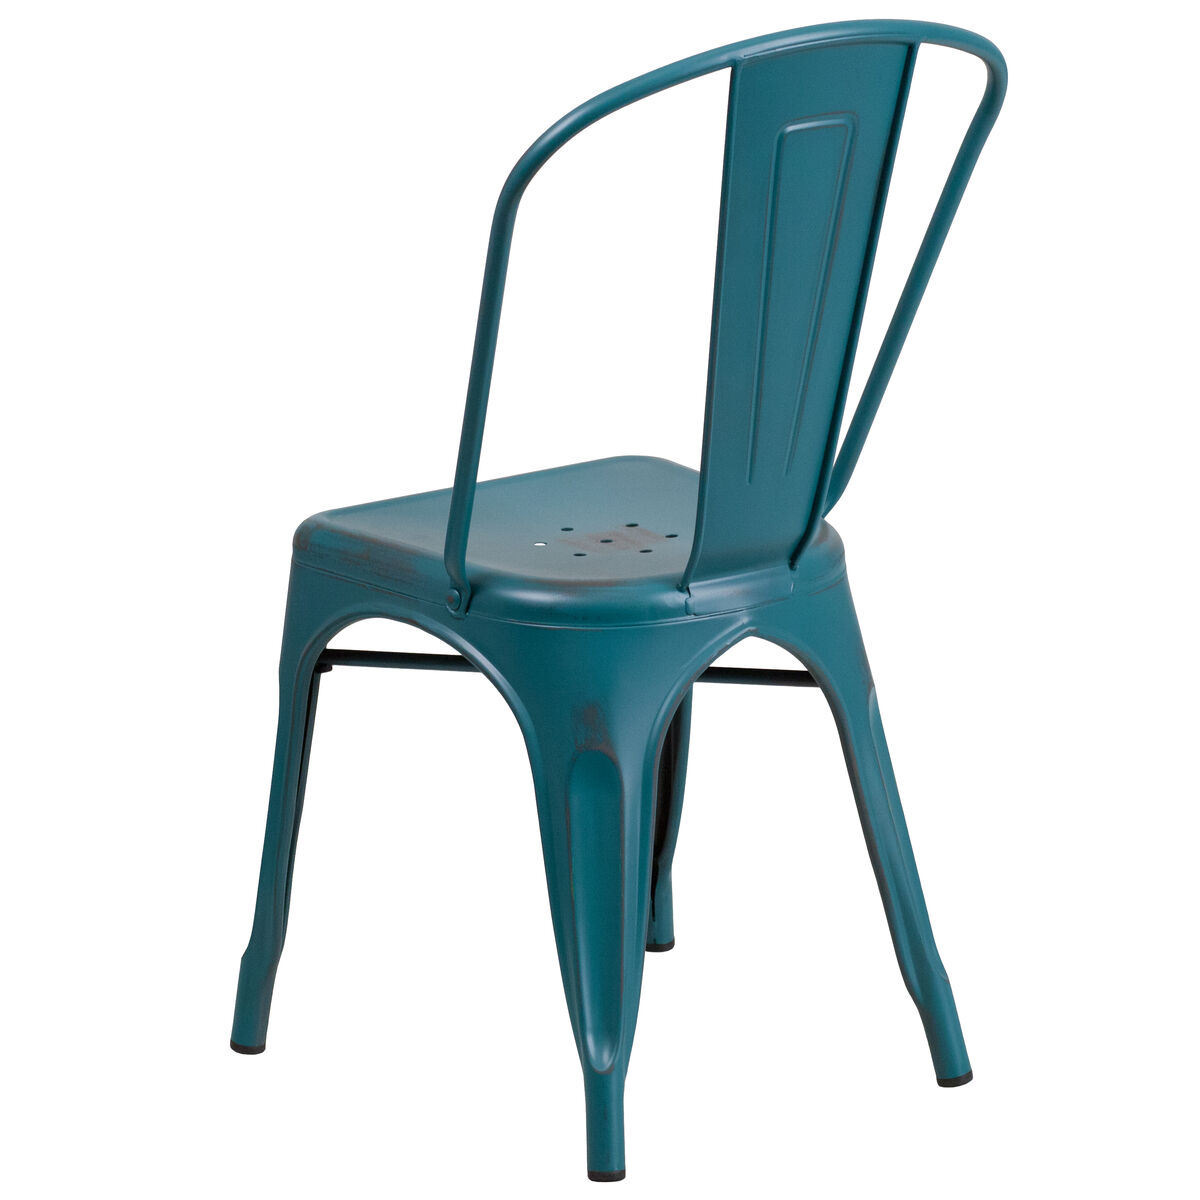 outdoor metal chair. Images. Distressed Kelly Blue-Teal Metal Indoor-Outdoor Stackable Chair Outdoor I